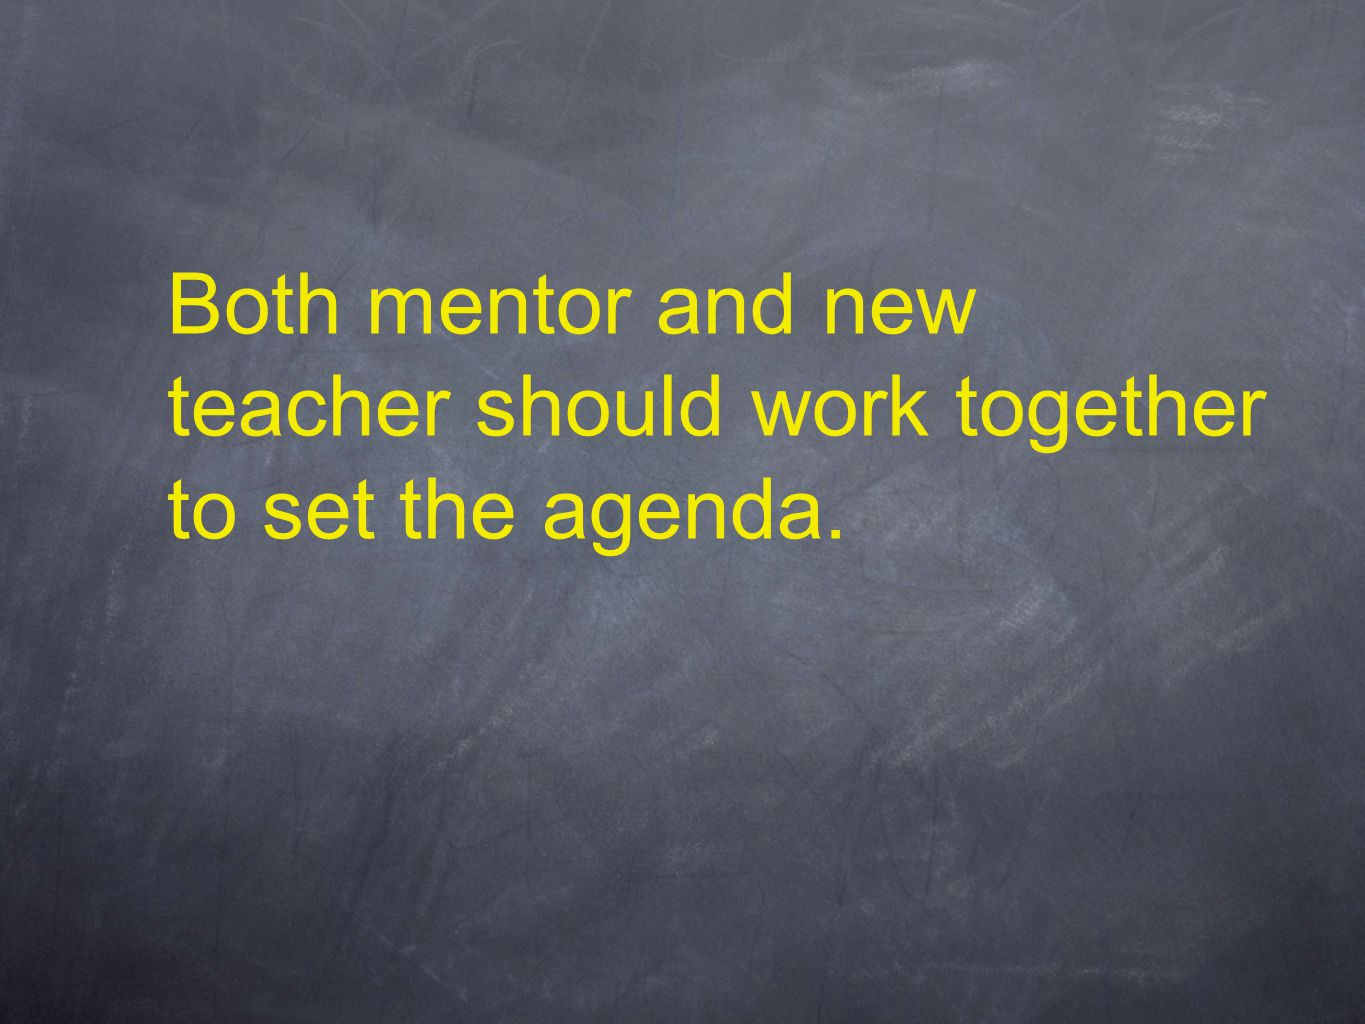 Both mentor and new teacher should work together to set the agenda.